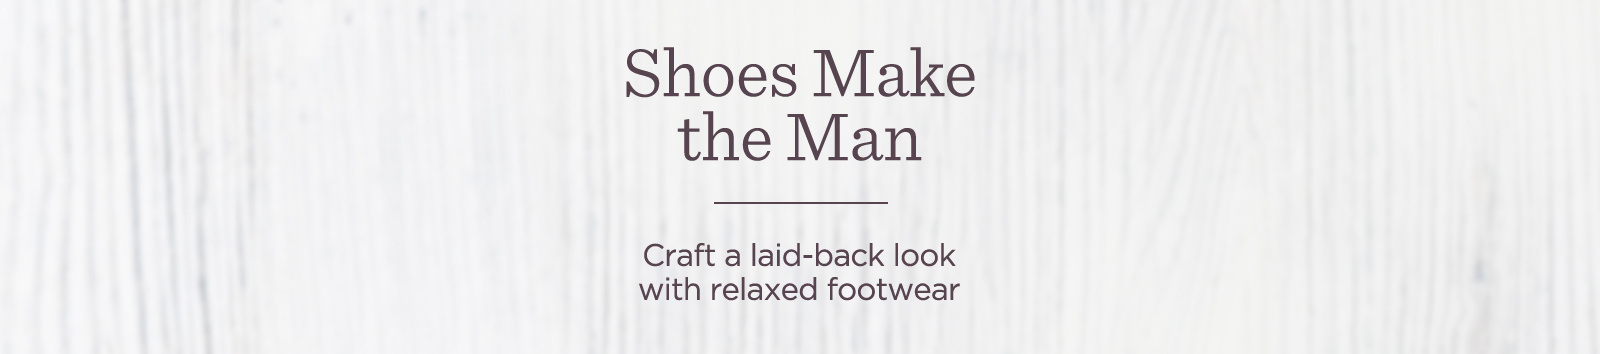 Shoes Make the Man   Craft a laid-back look with relaxed footwear